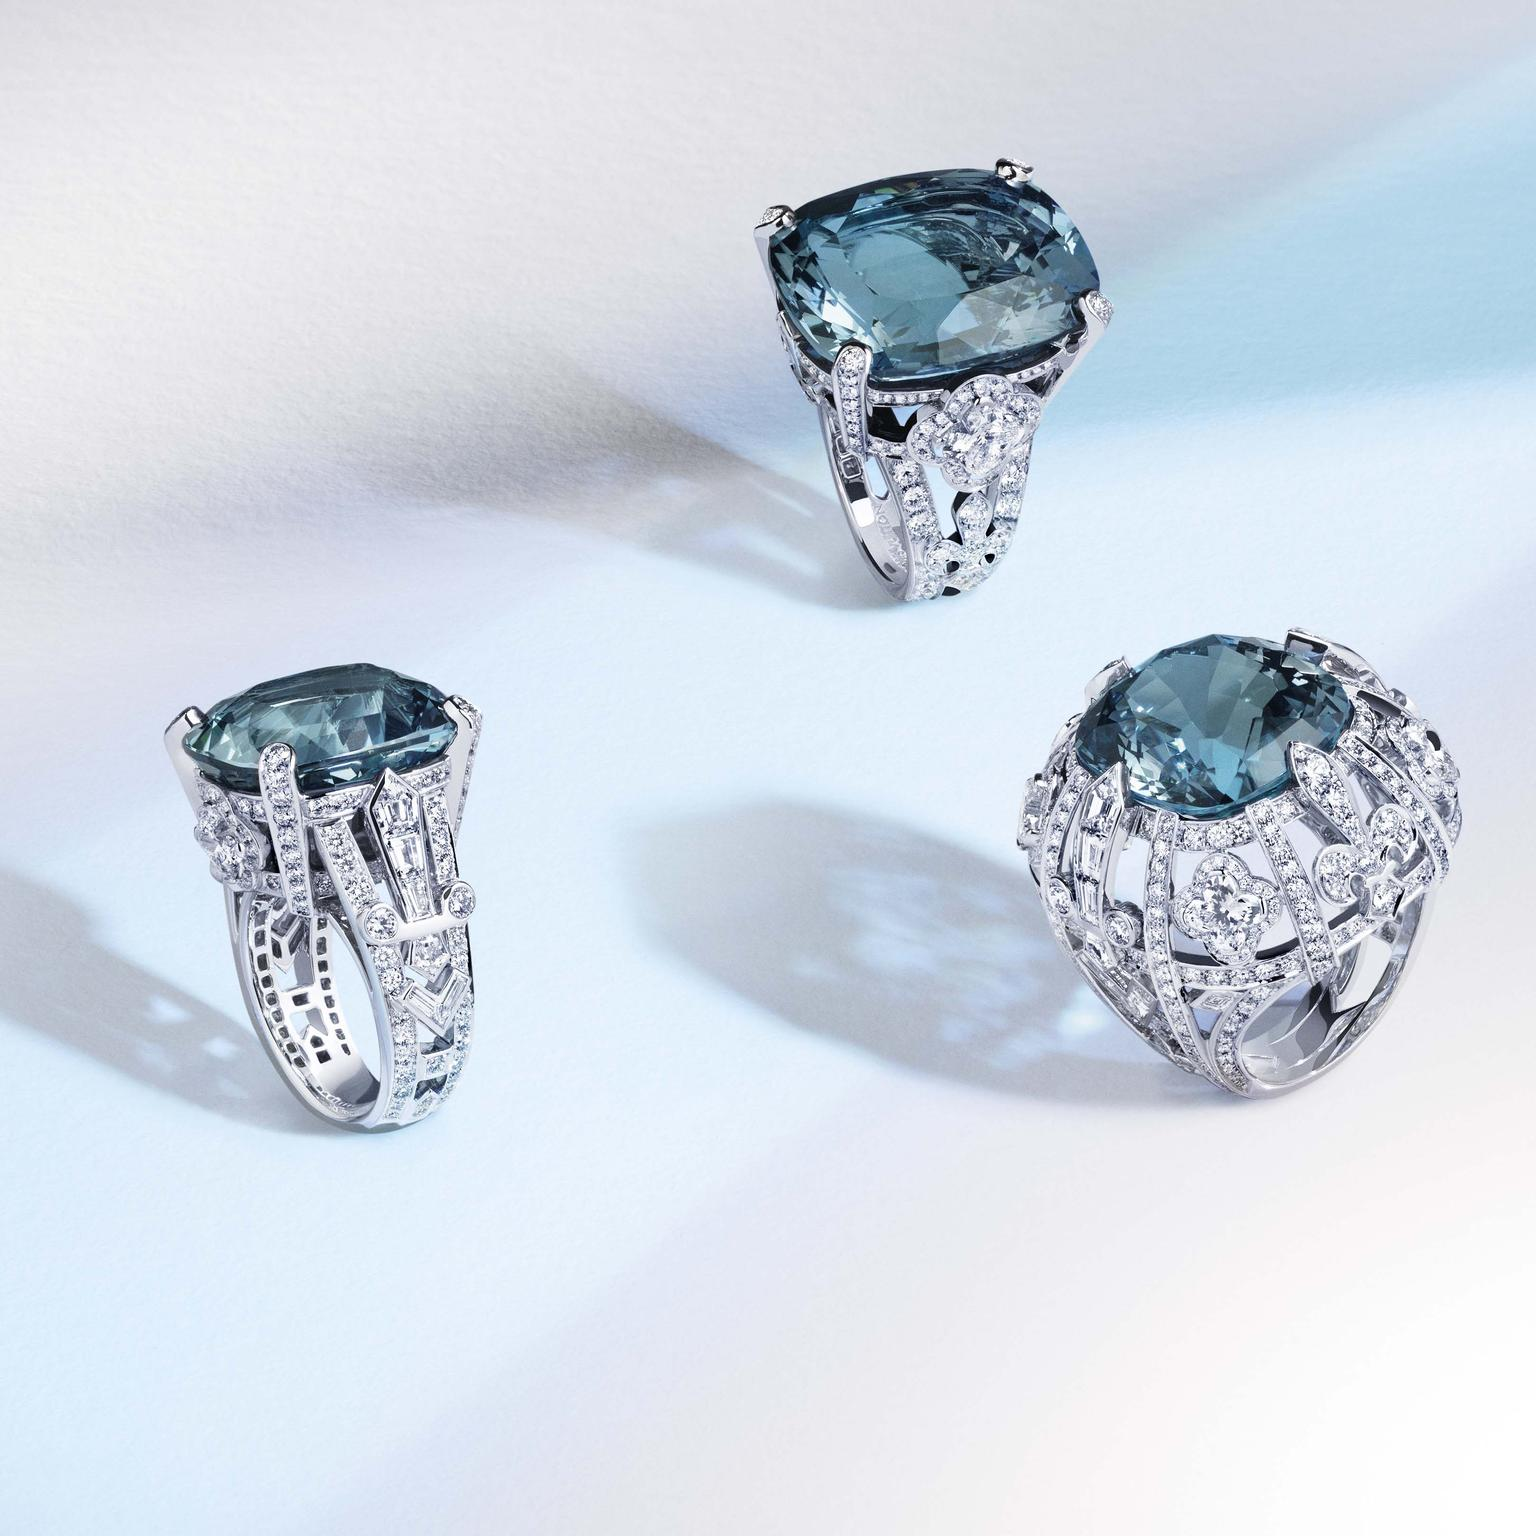 uis_vuitton_riders_of_the_knights_la_reine_diamond_and_aquamarine_rings_jpg__1536x0_q75_crop-scale_subsampling-2_upscale-false